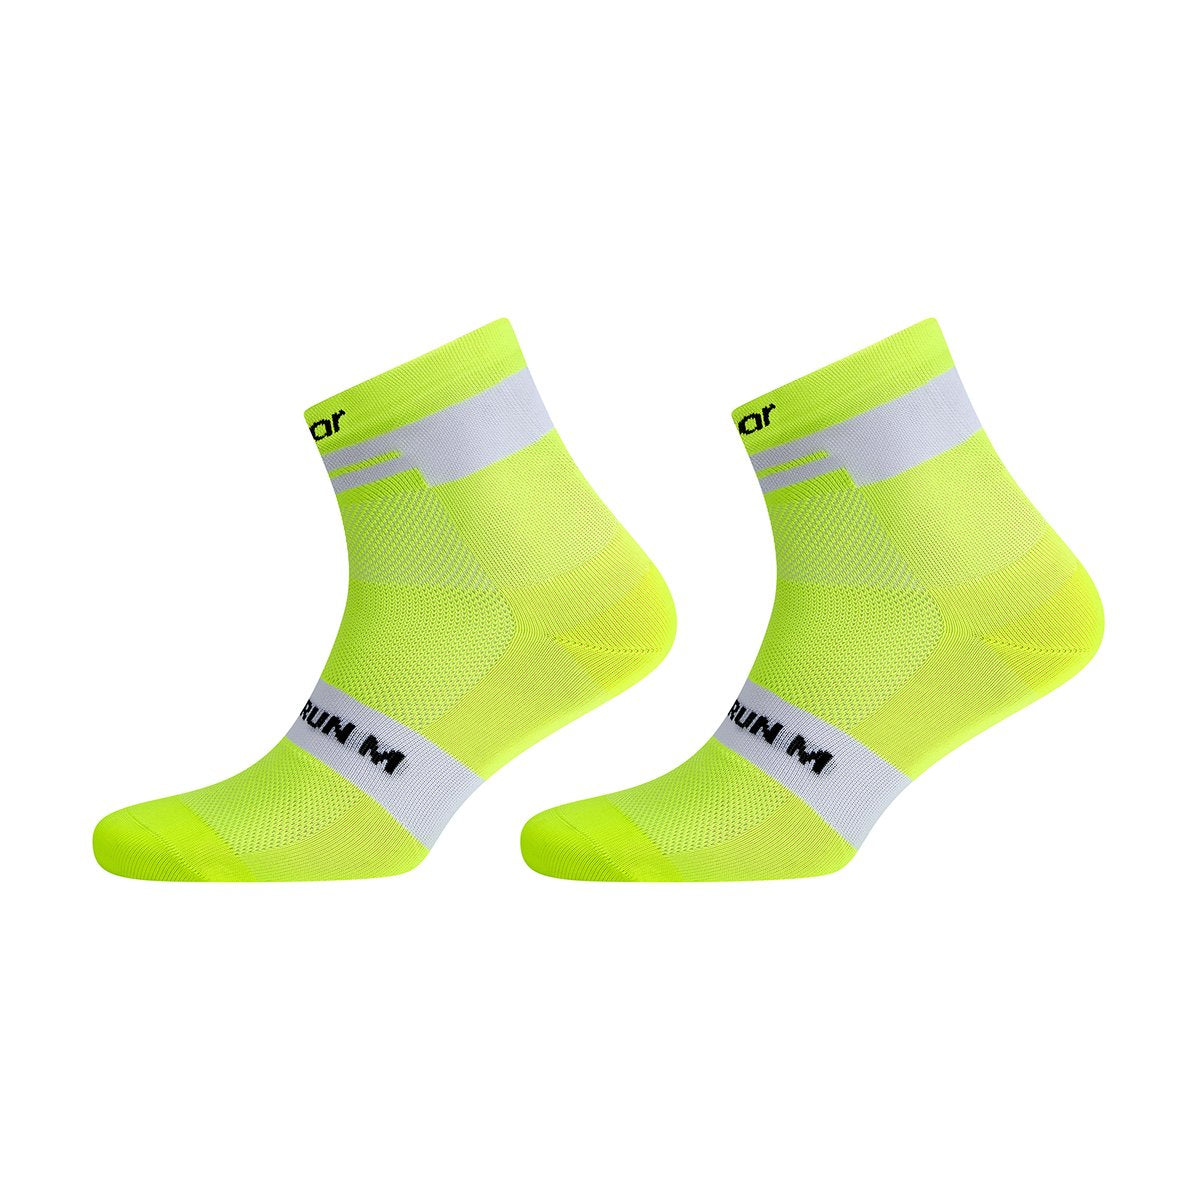 SOAR | Ankle Sock - Fluro Yellow